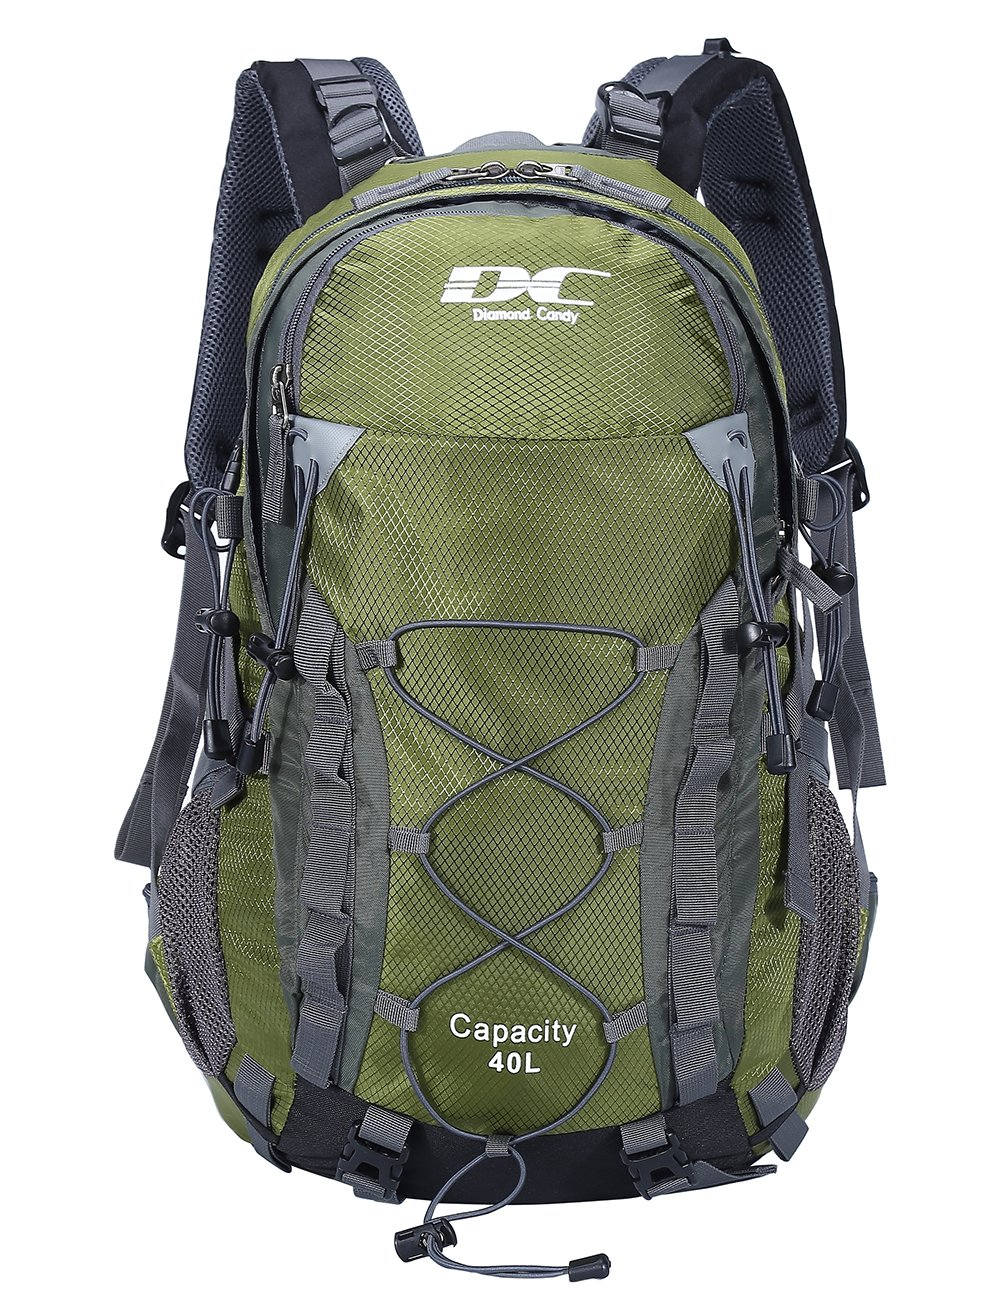 450514af7b Amazon.com   Diamond Candy Waterproof Hiking Backpack 40L with Rain Cover  for Outdoor Army Green   Sports   Outdoors